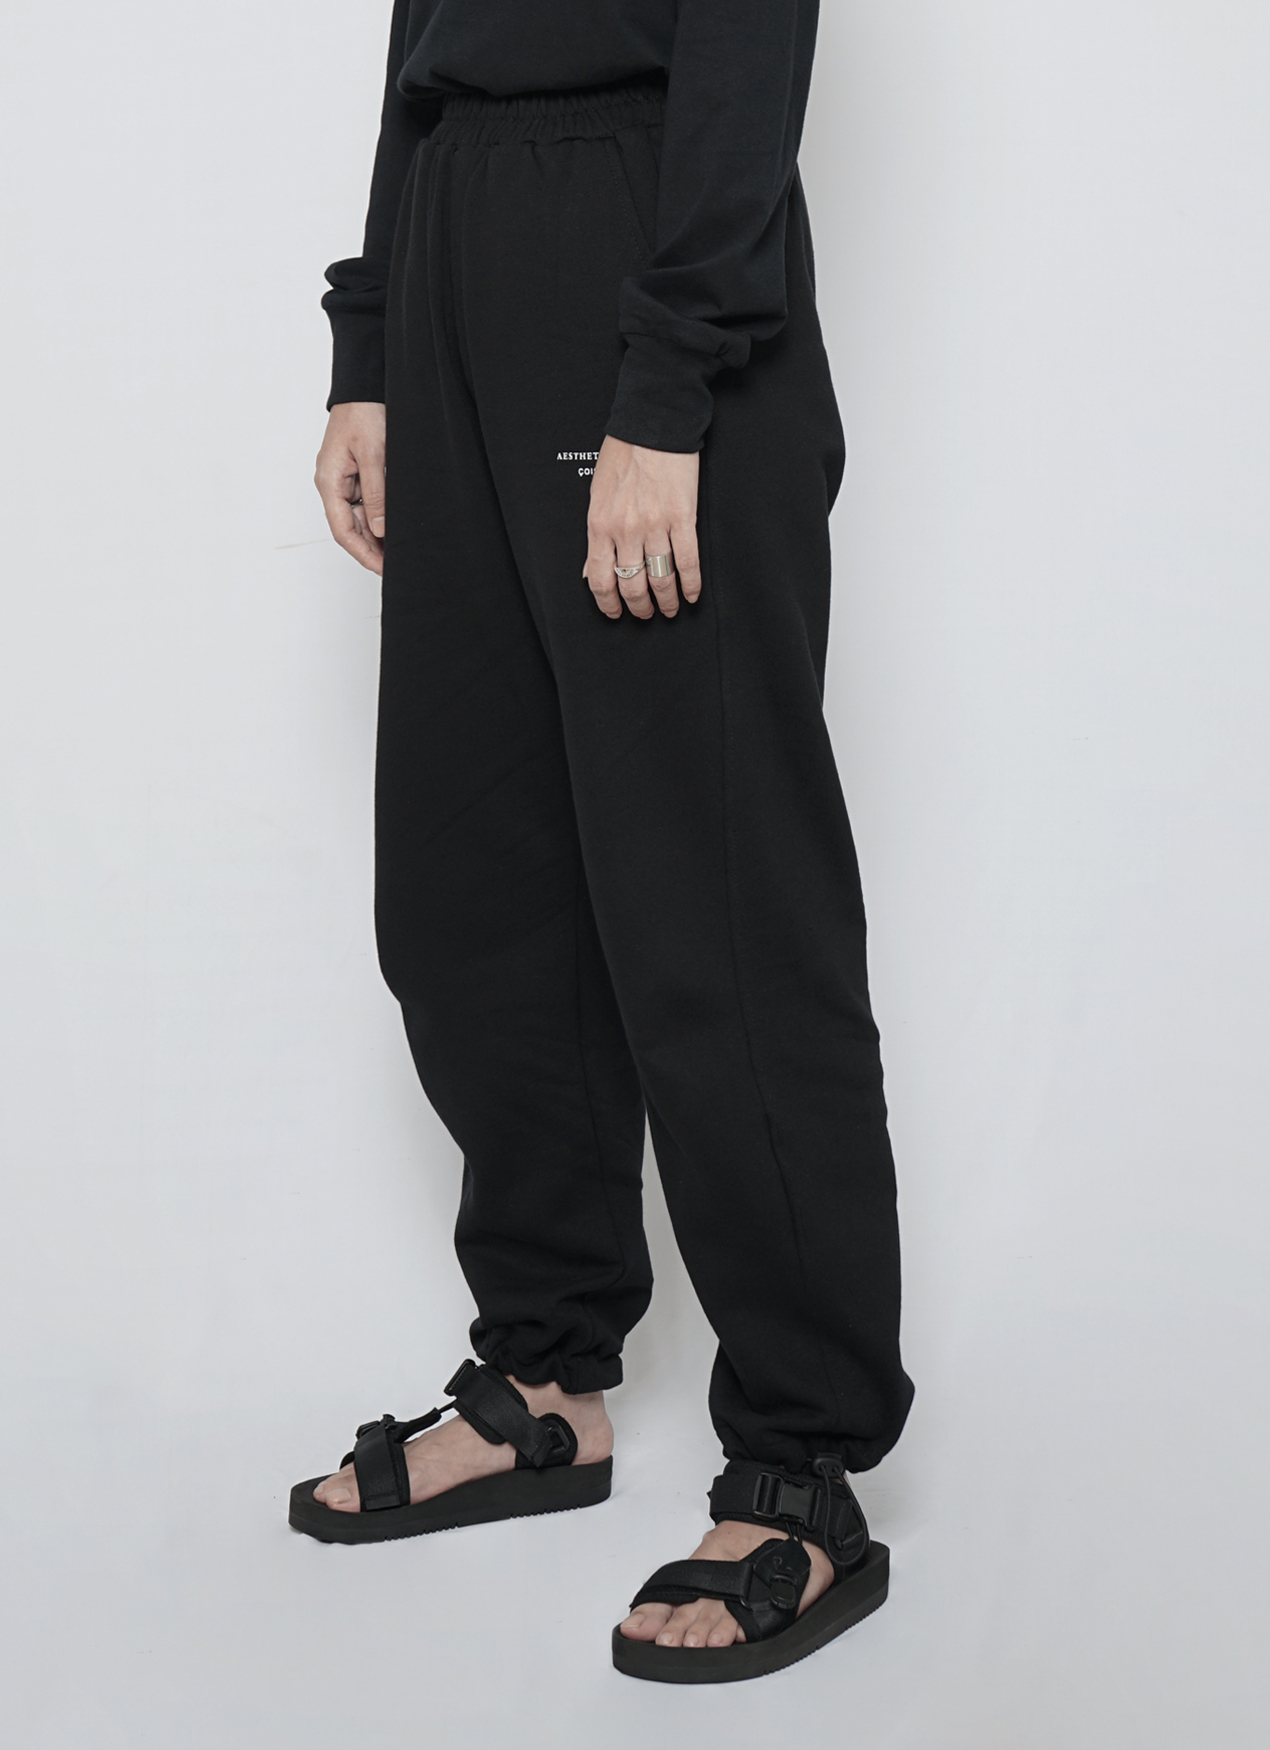 Aesthetic Pleasure Coise Sweat Pants Black